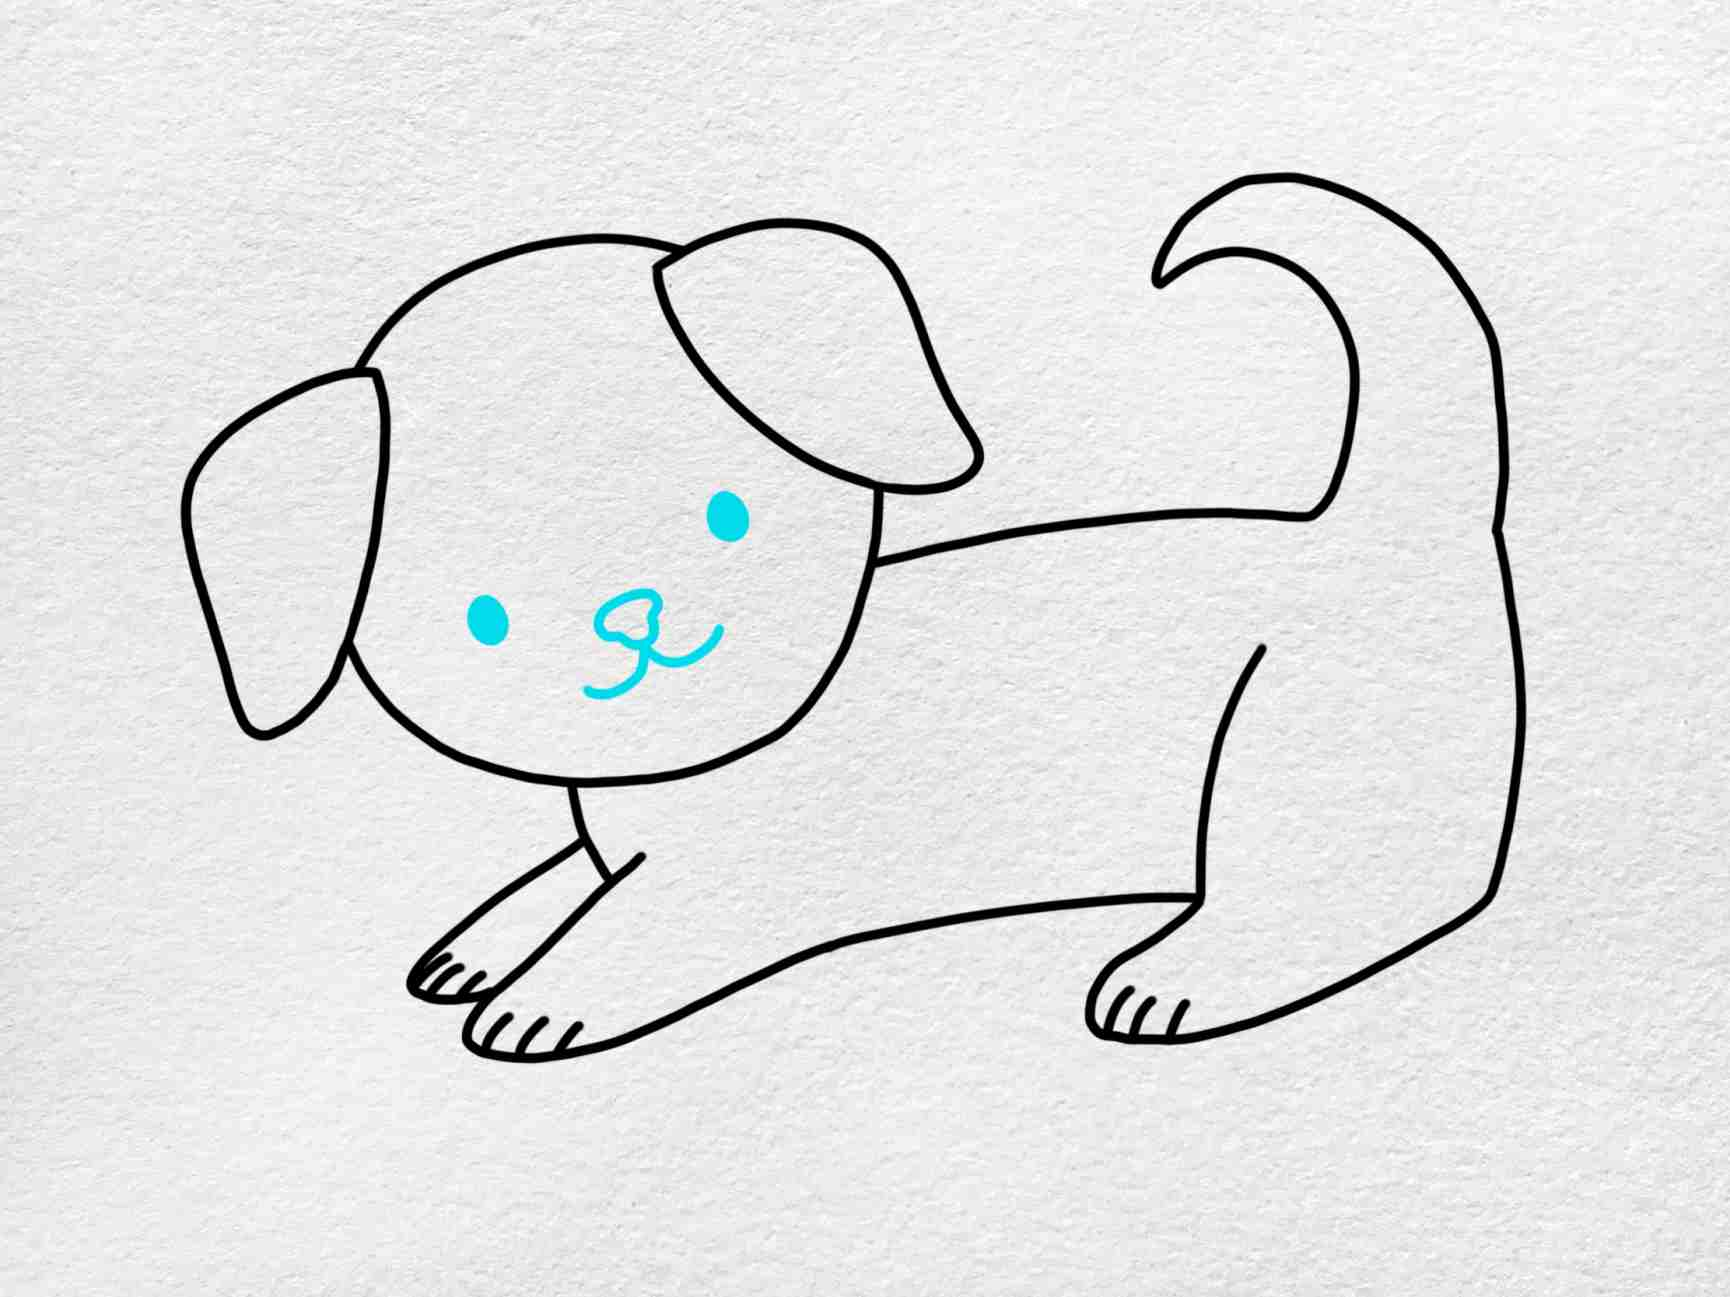 How To Draw A Puppy Step By Step: Step 5